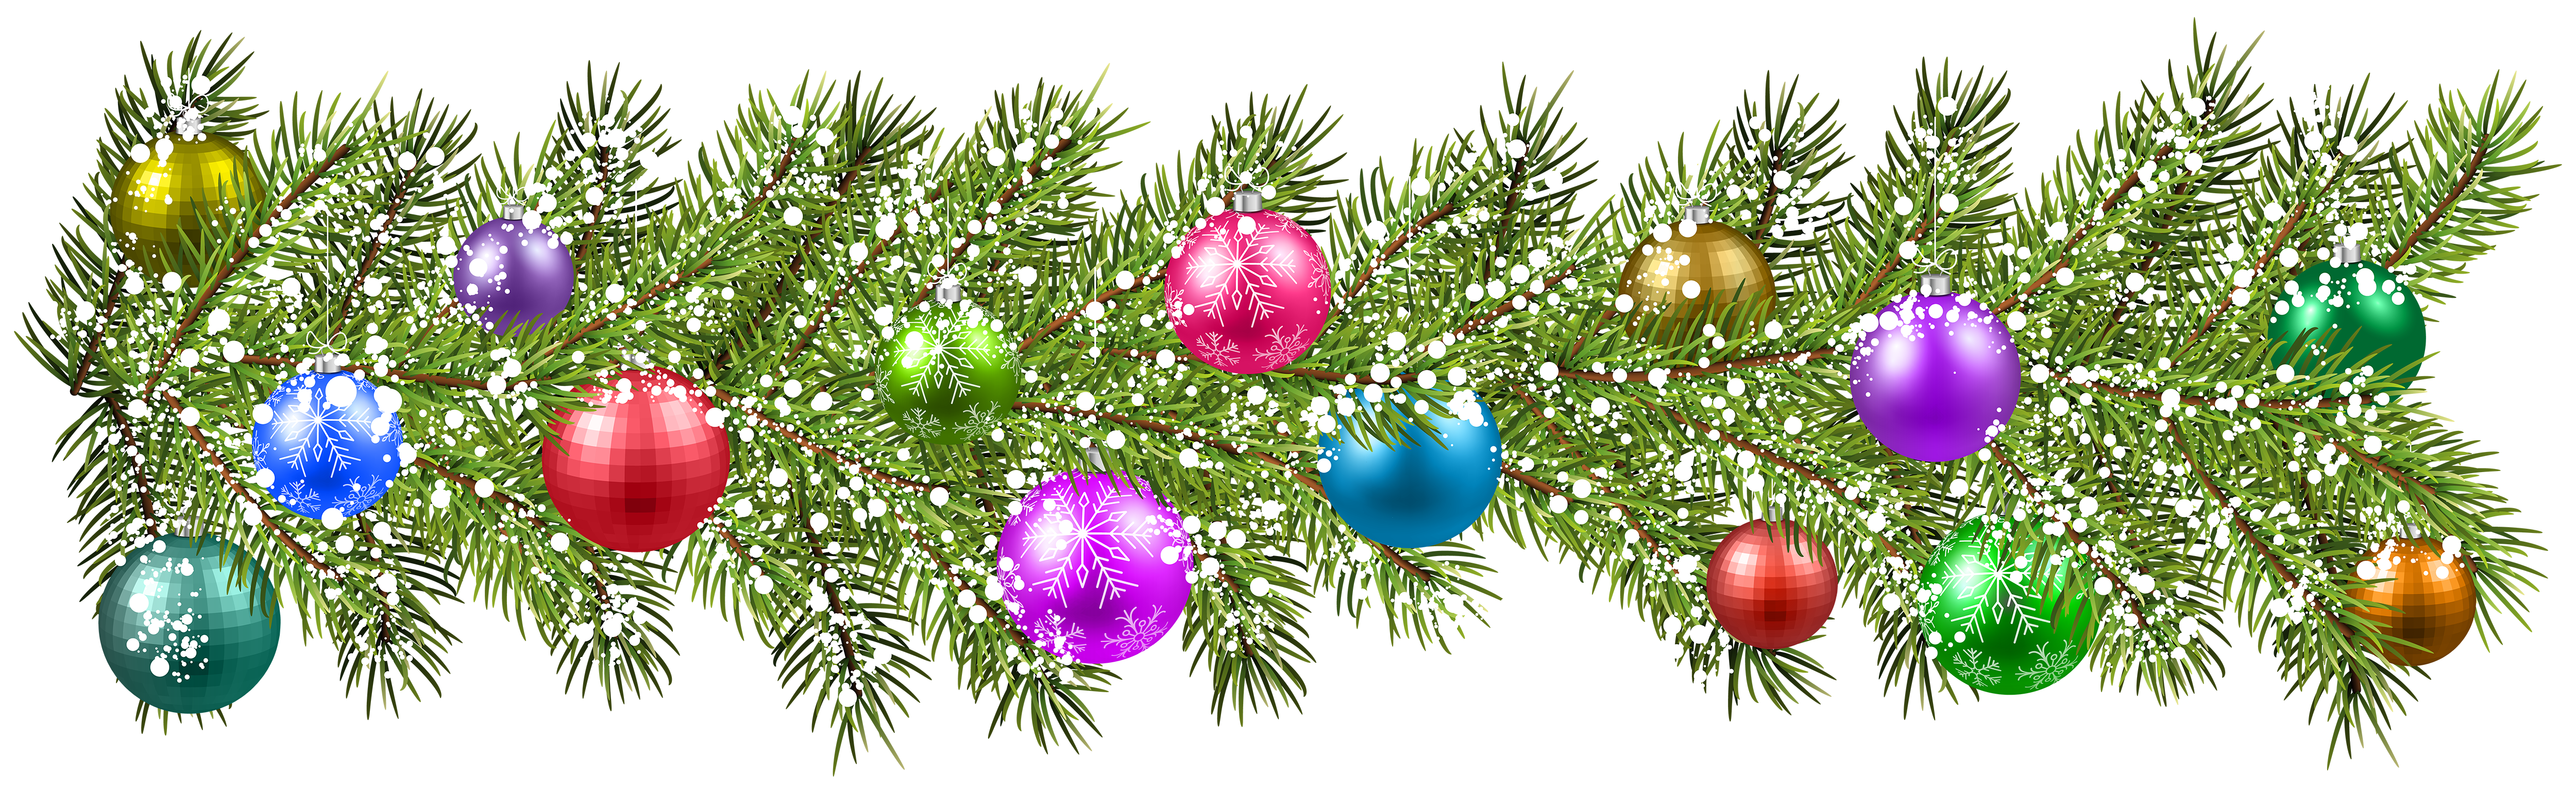 Christmas pine branches and. Pomegranate clipart branch